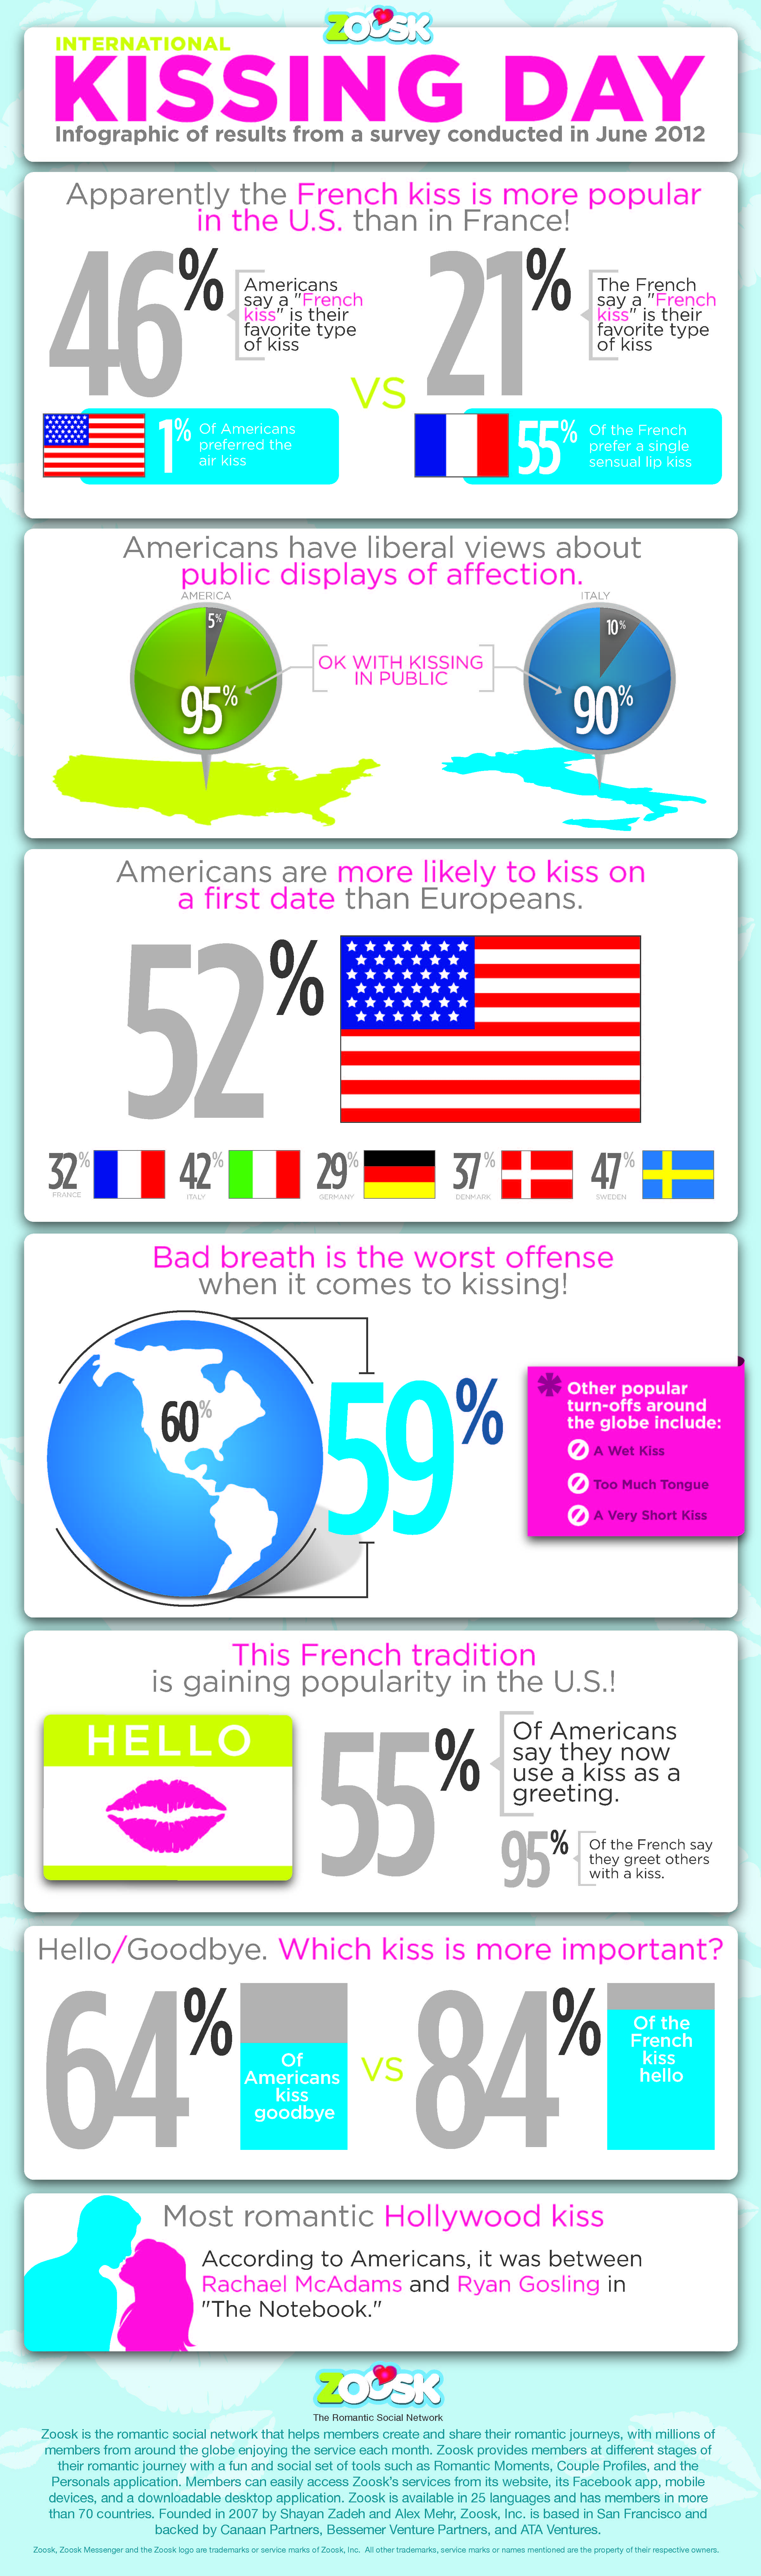 Zoosk International Kissing Day Survey Infographic